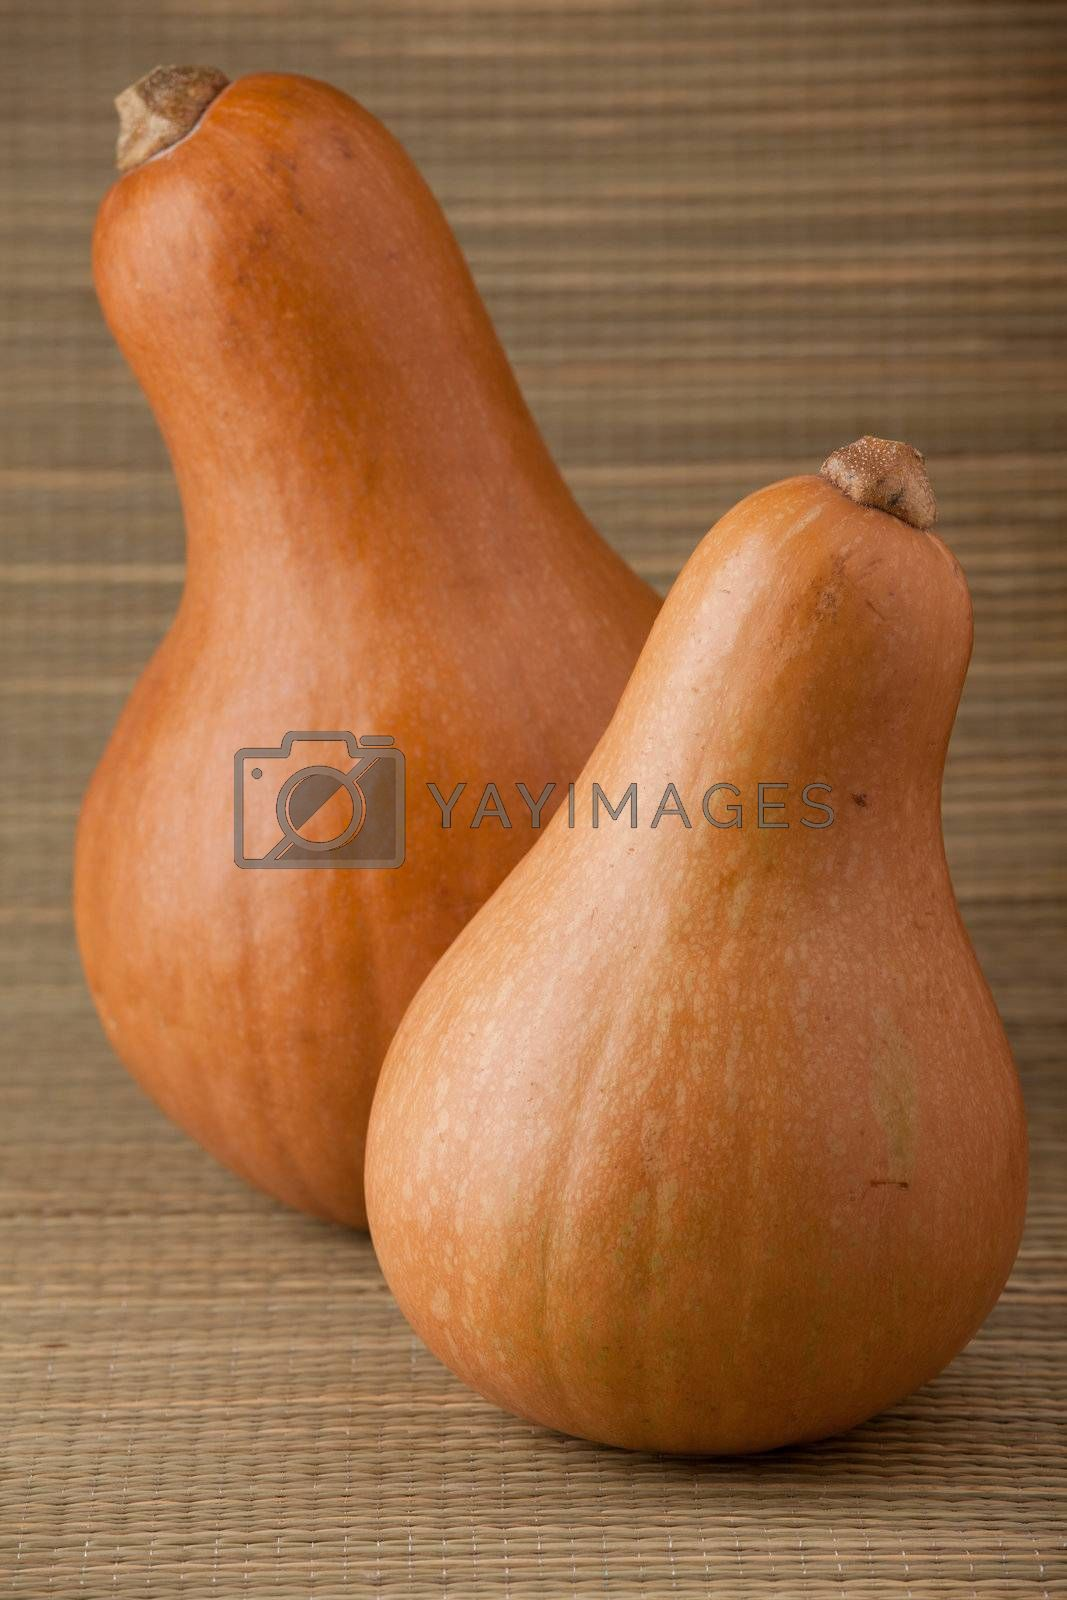 Royalty free image of Two ripe orange pumpkins on straw woven surface and stripy backg by SergeyAK